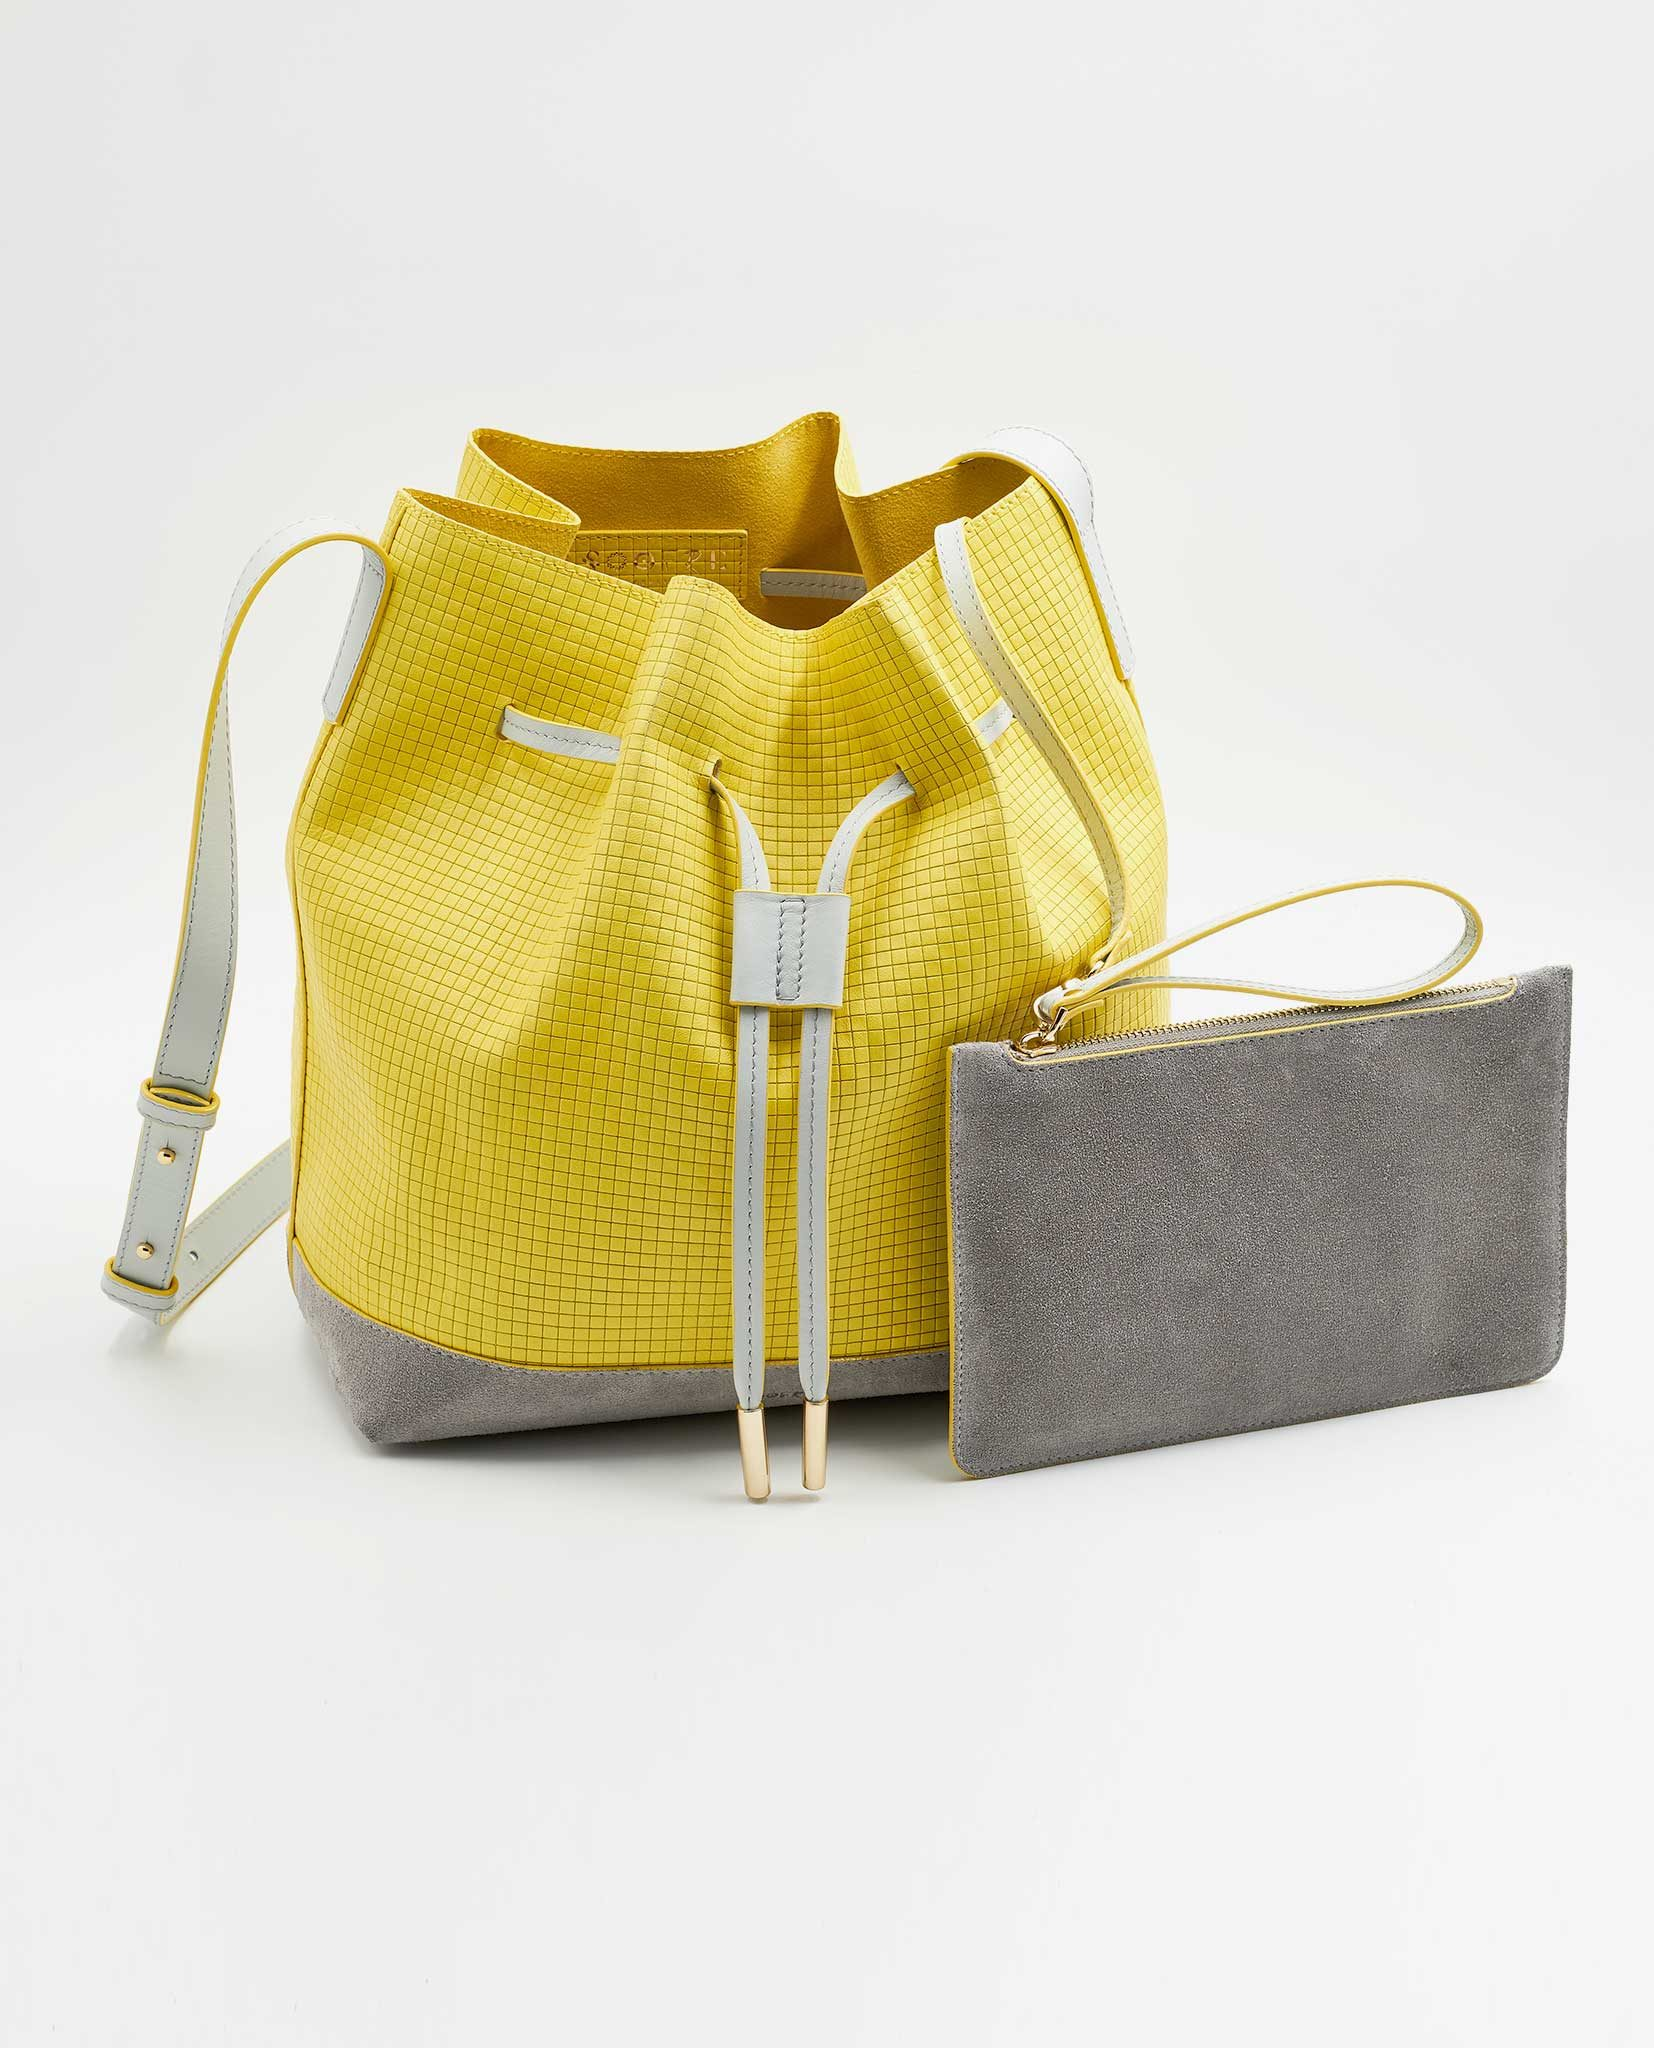 SOOFRE Berlin unique Bucket Bag squared yellow dove grey